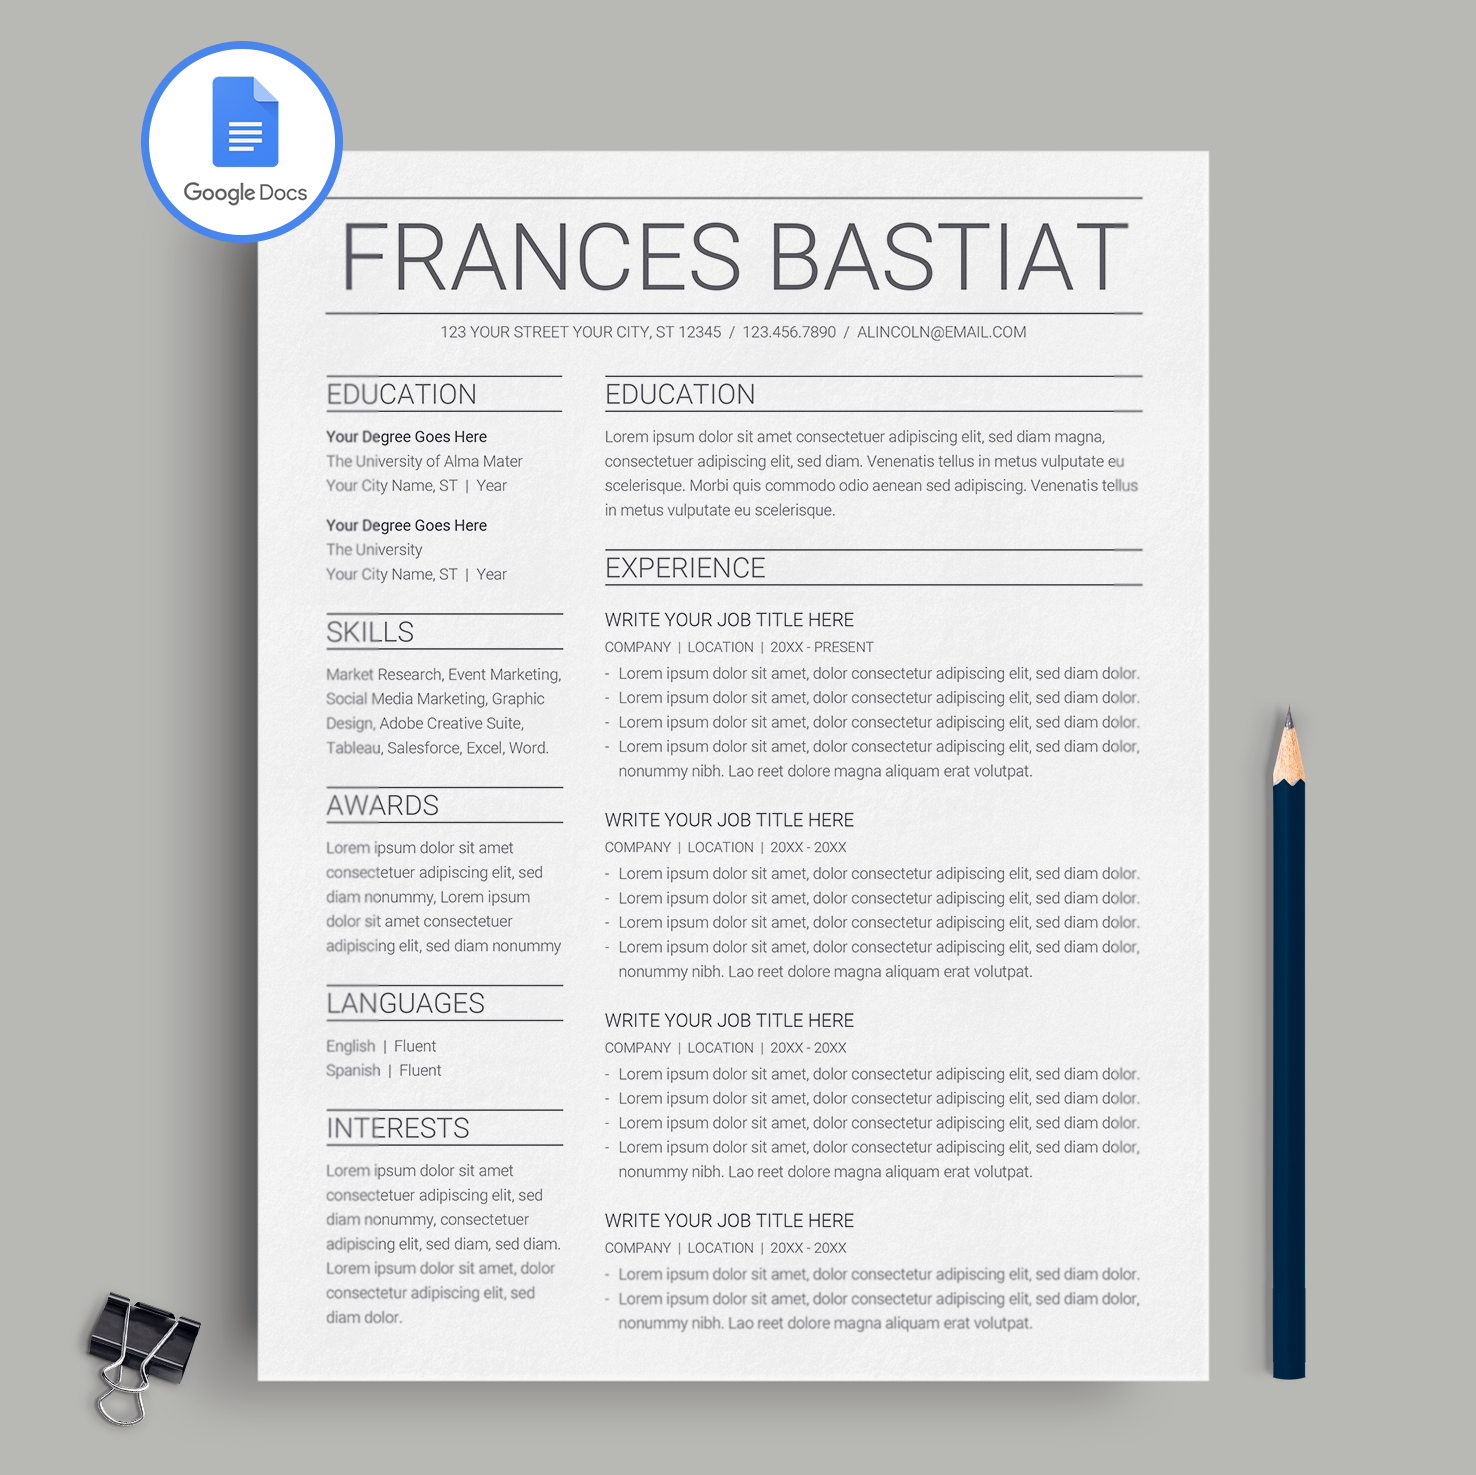 Frances Bastiat Google Docs Resume Template Cv Template